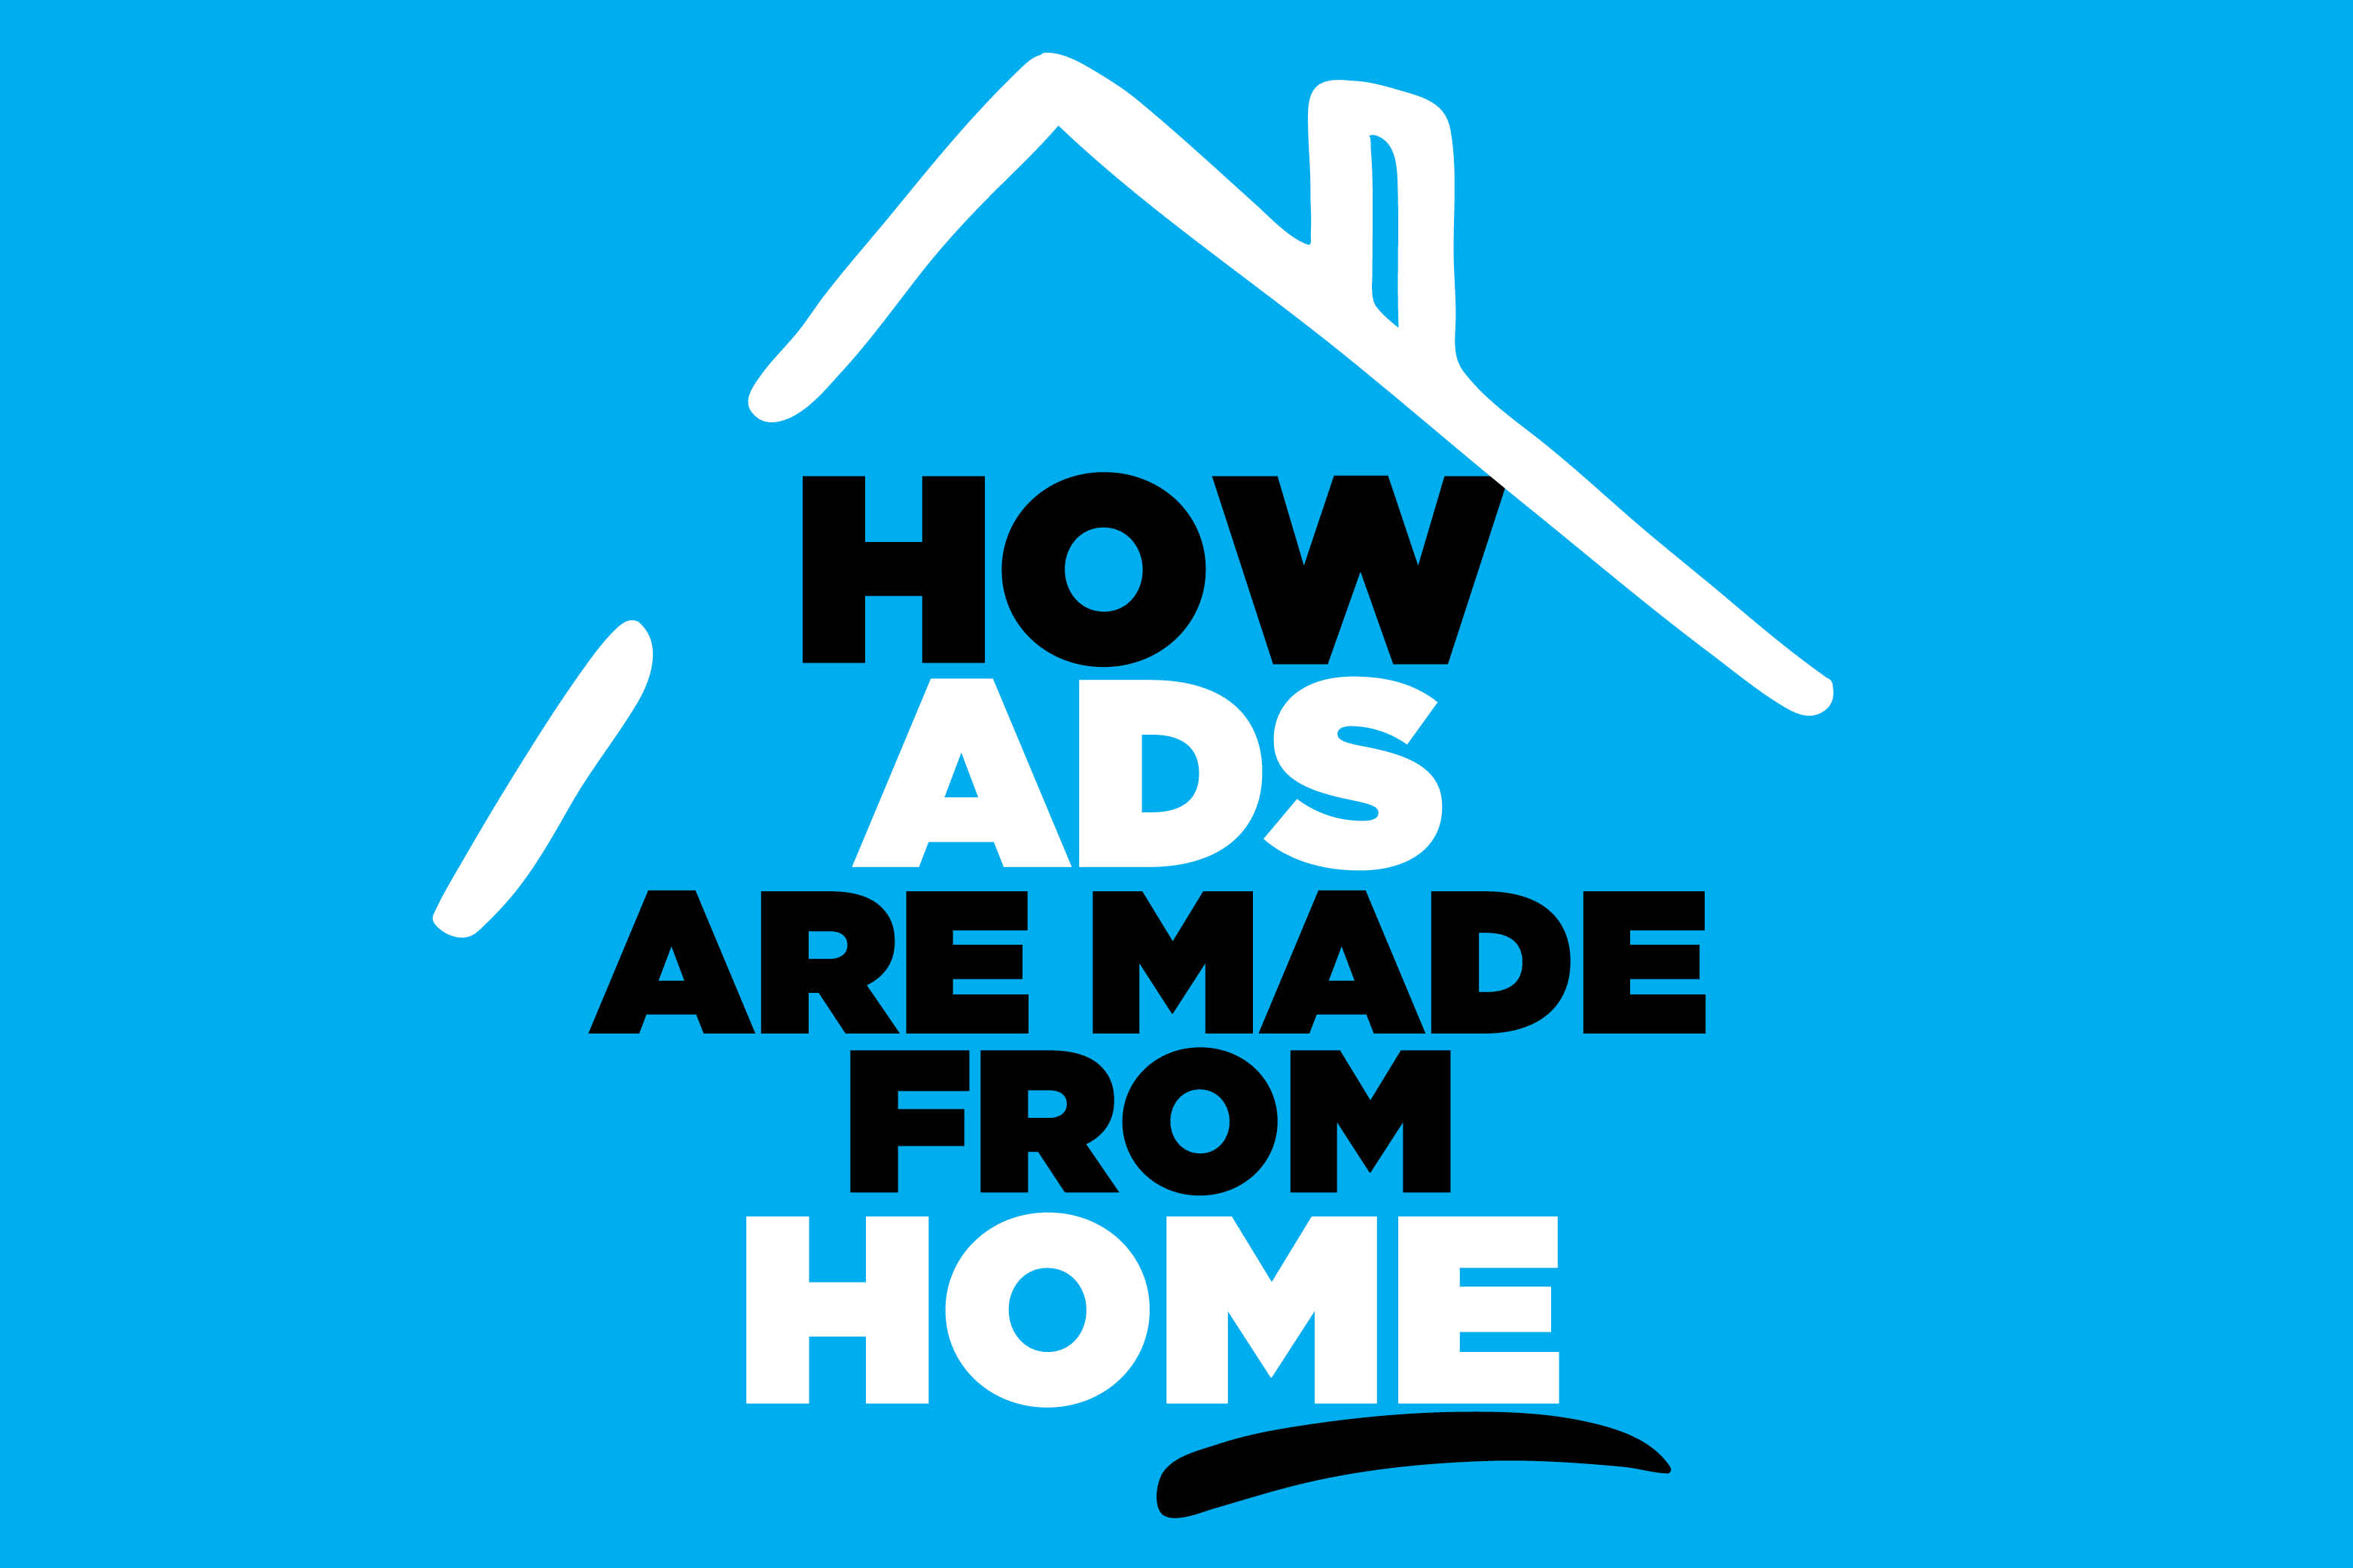 HOW ADS ARE MADE FROM HOME